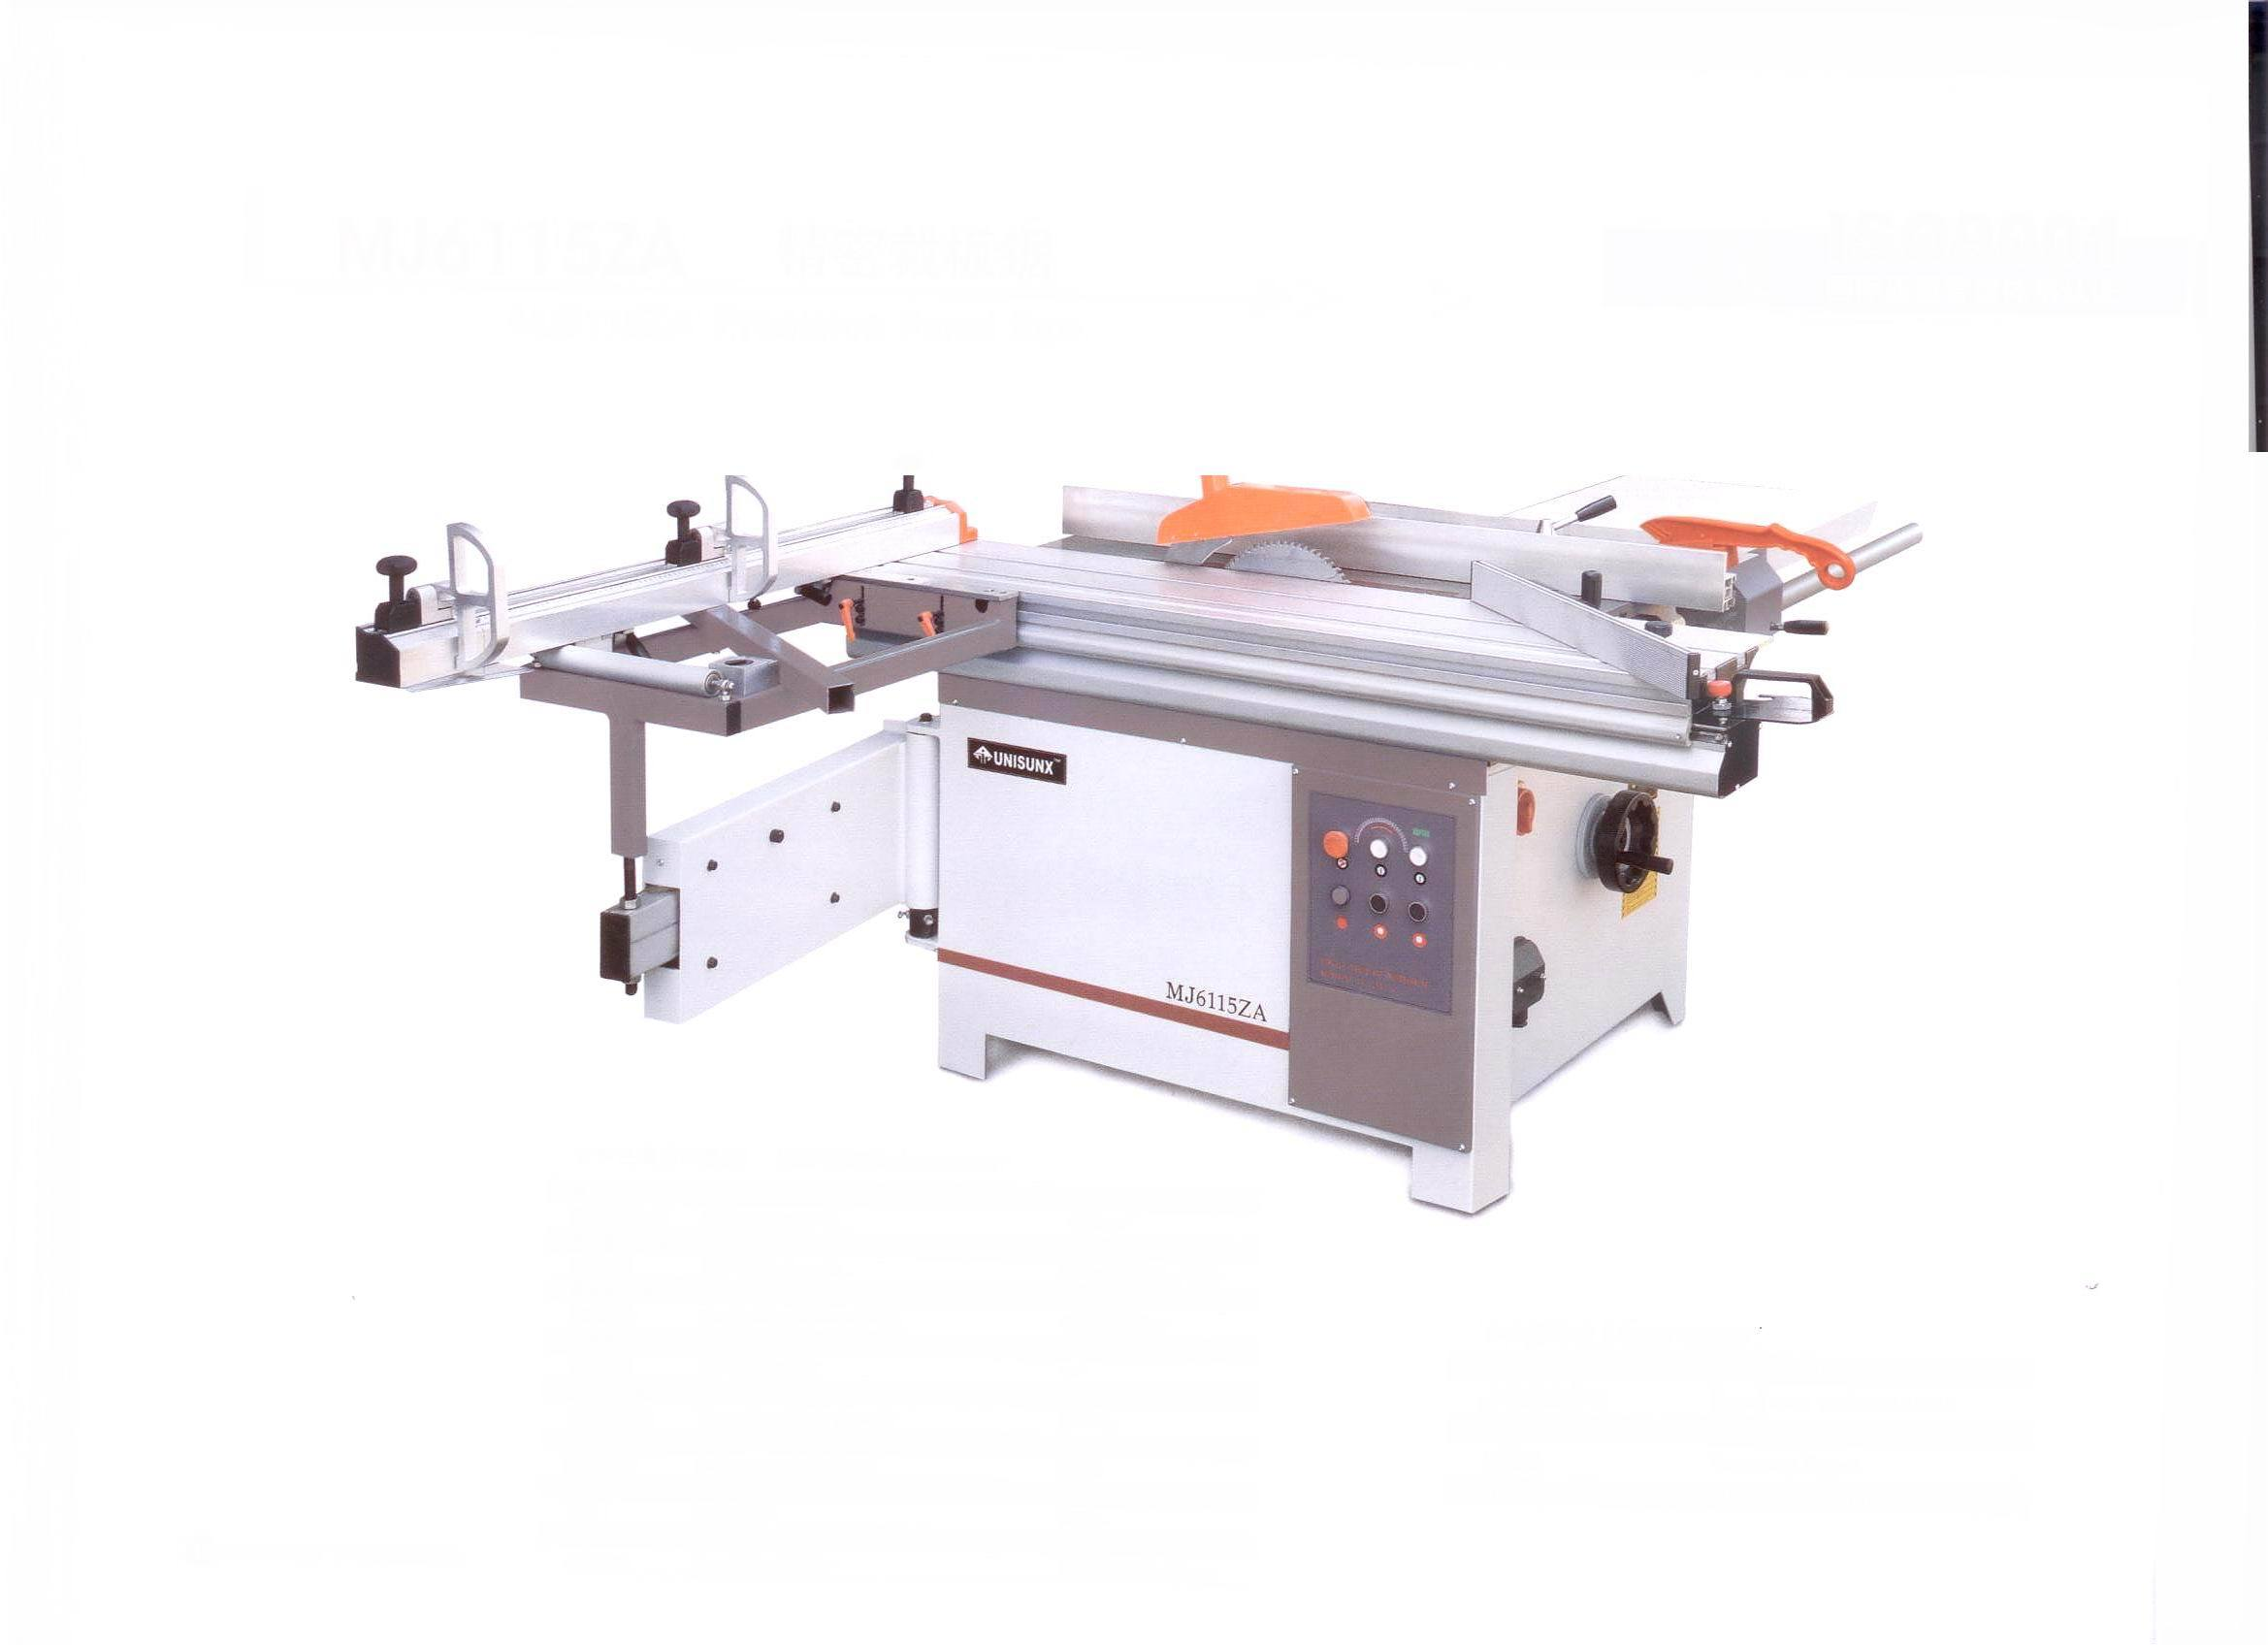 Woodworking products made in china p0st.us